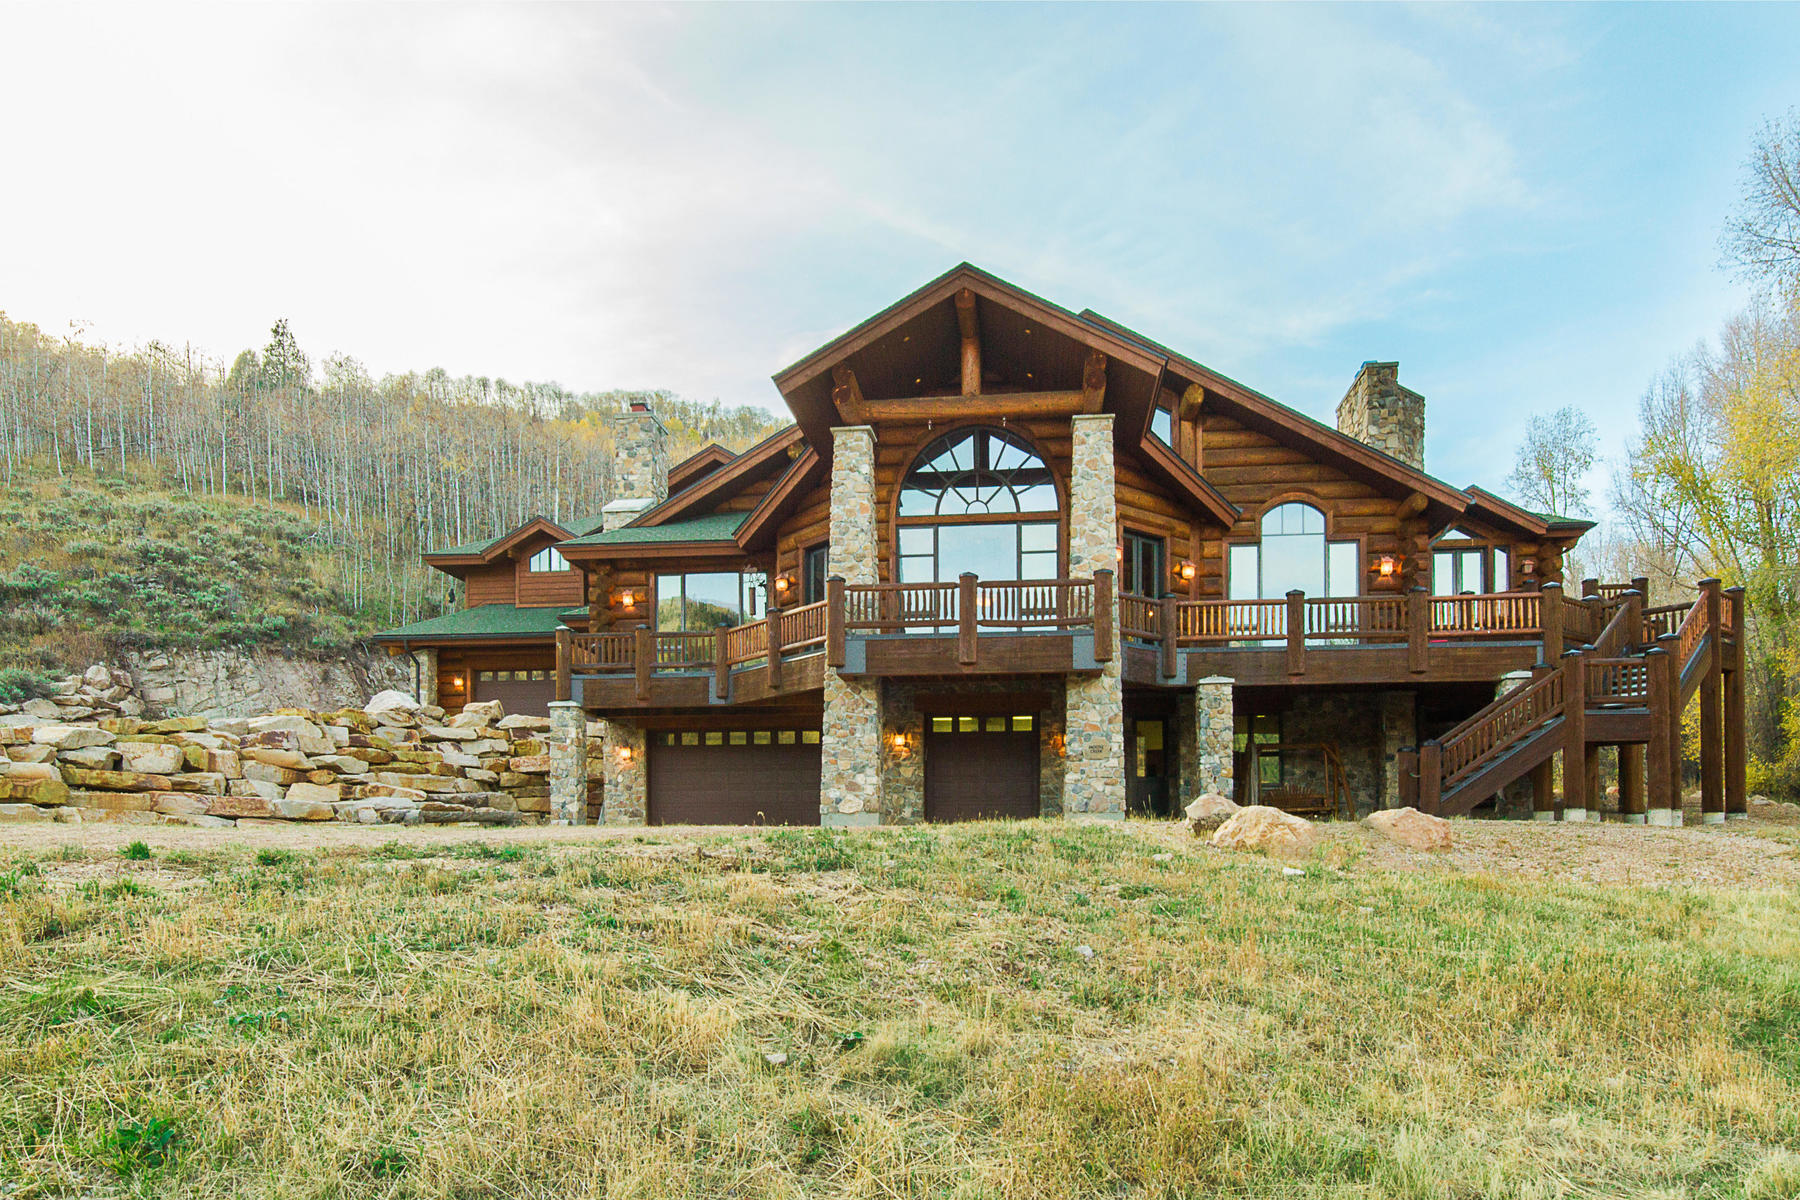 Single Family Home for Sale at Amazing One of a Kind Log Home on 160 Acres! 3950 E Weber Canyon Rd Oakley, Utah 84055 United States